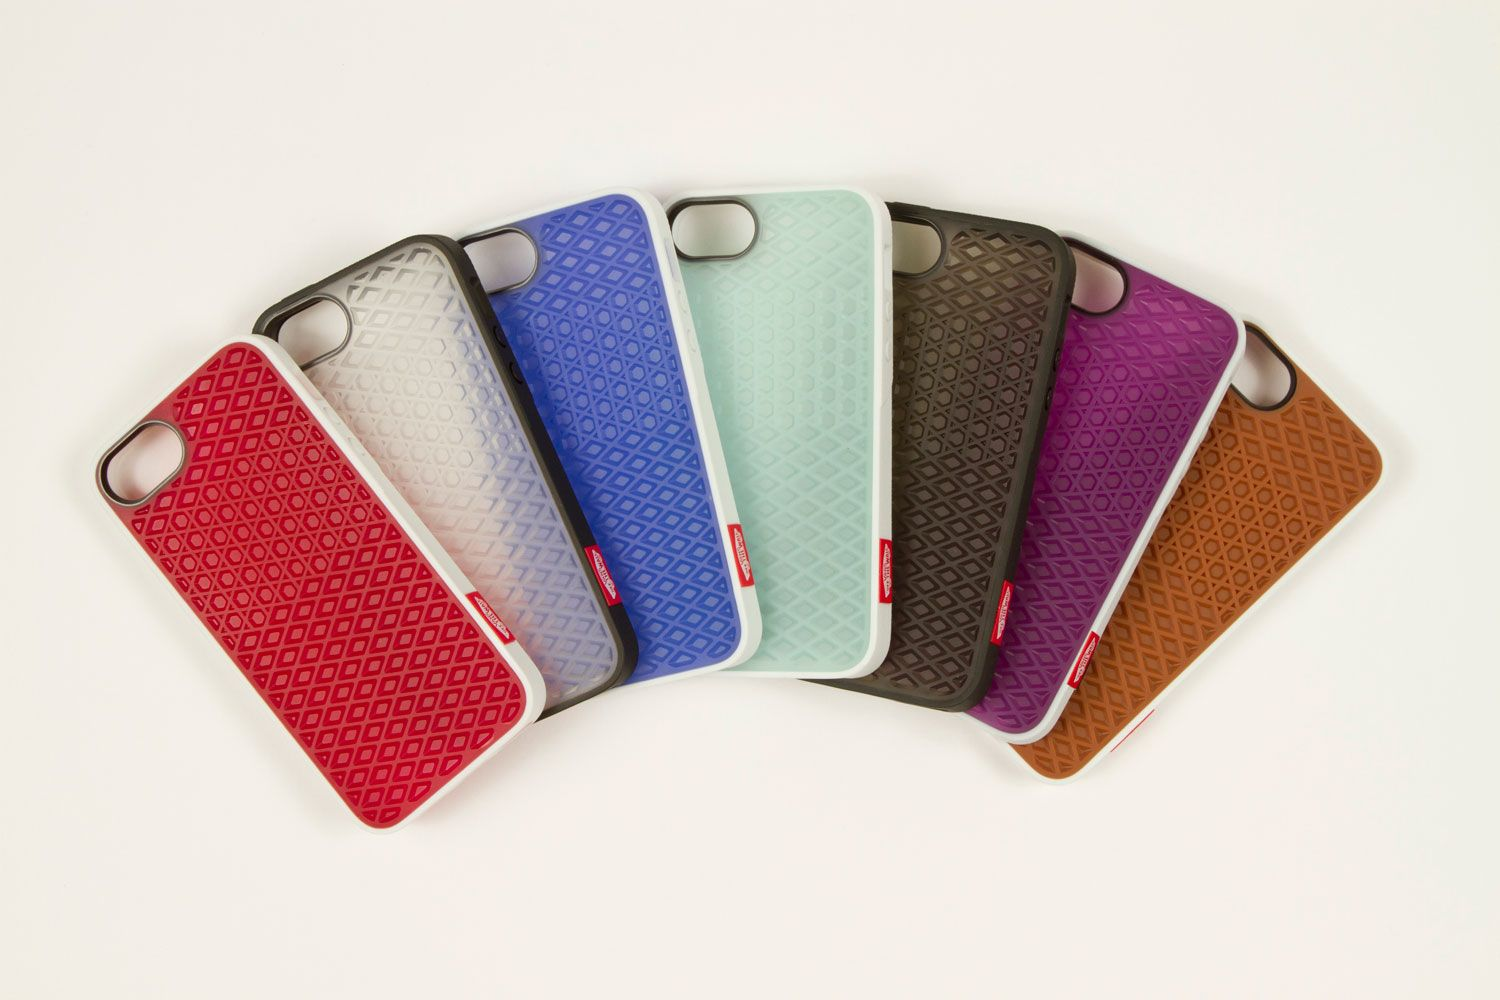 Vans X Belkin I Phone 5 Waffle Sole Case Collection